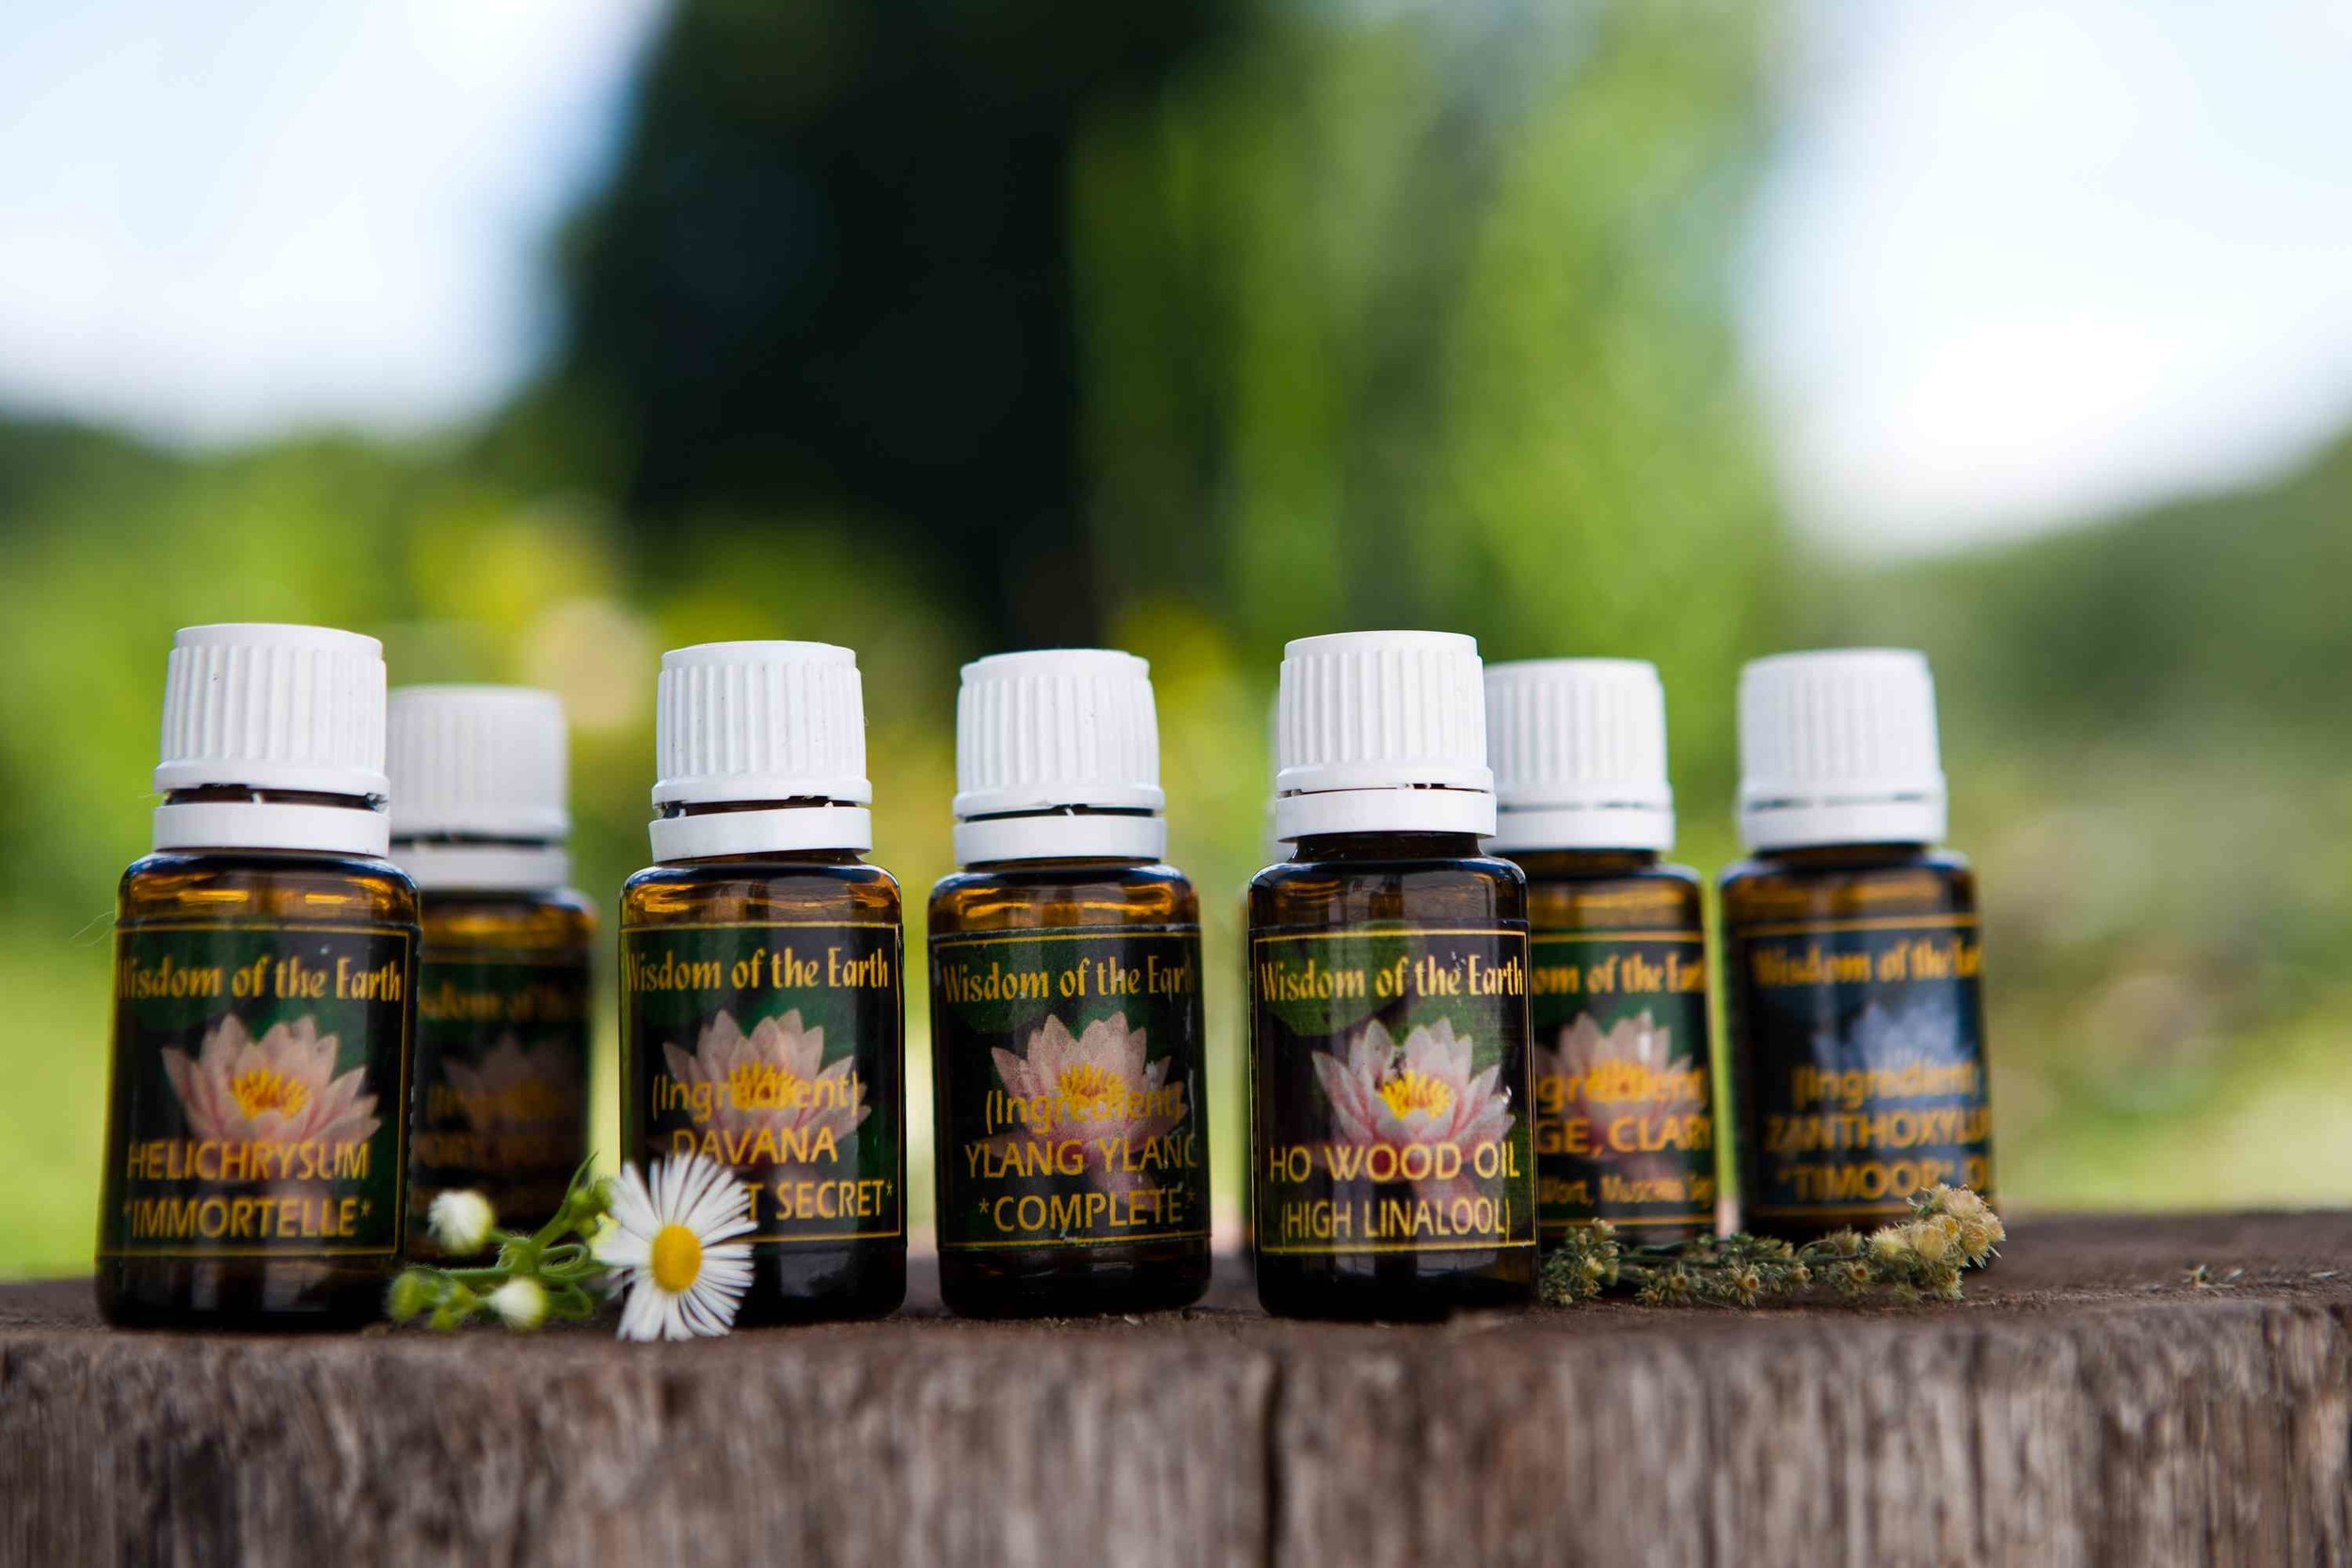 Pure Medicinal Grade Essential Oils - Hand Poured with Love